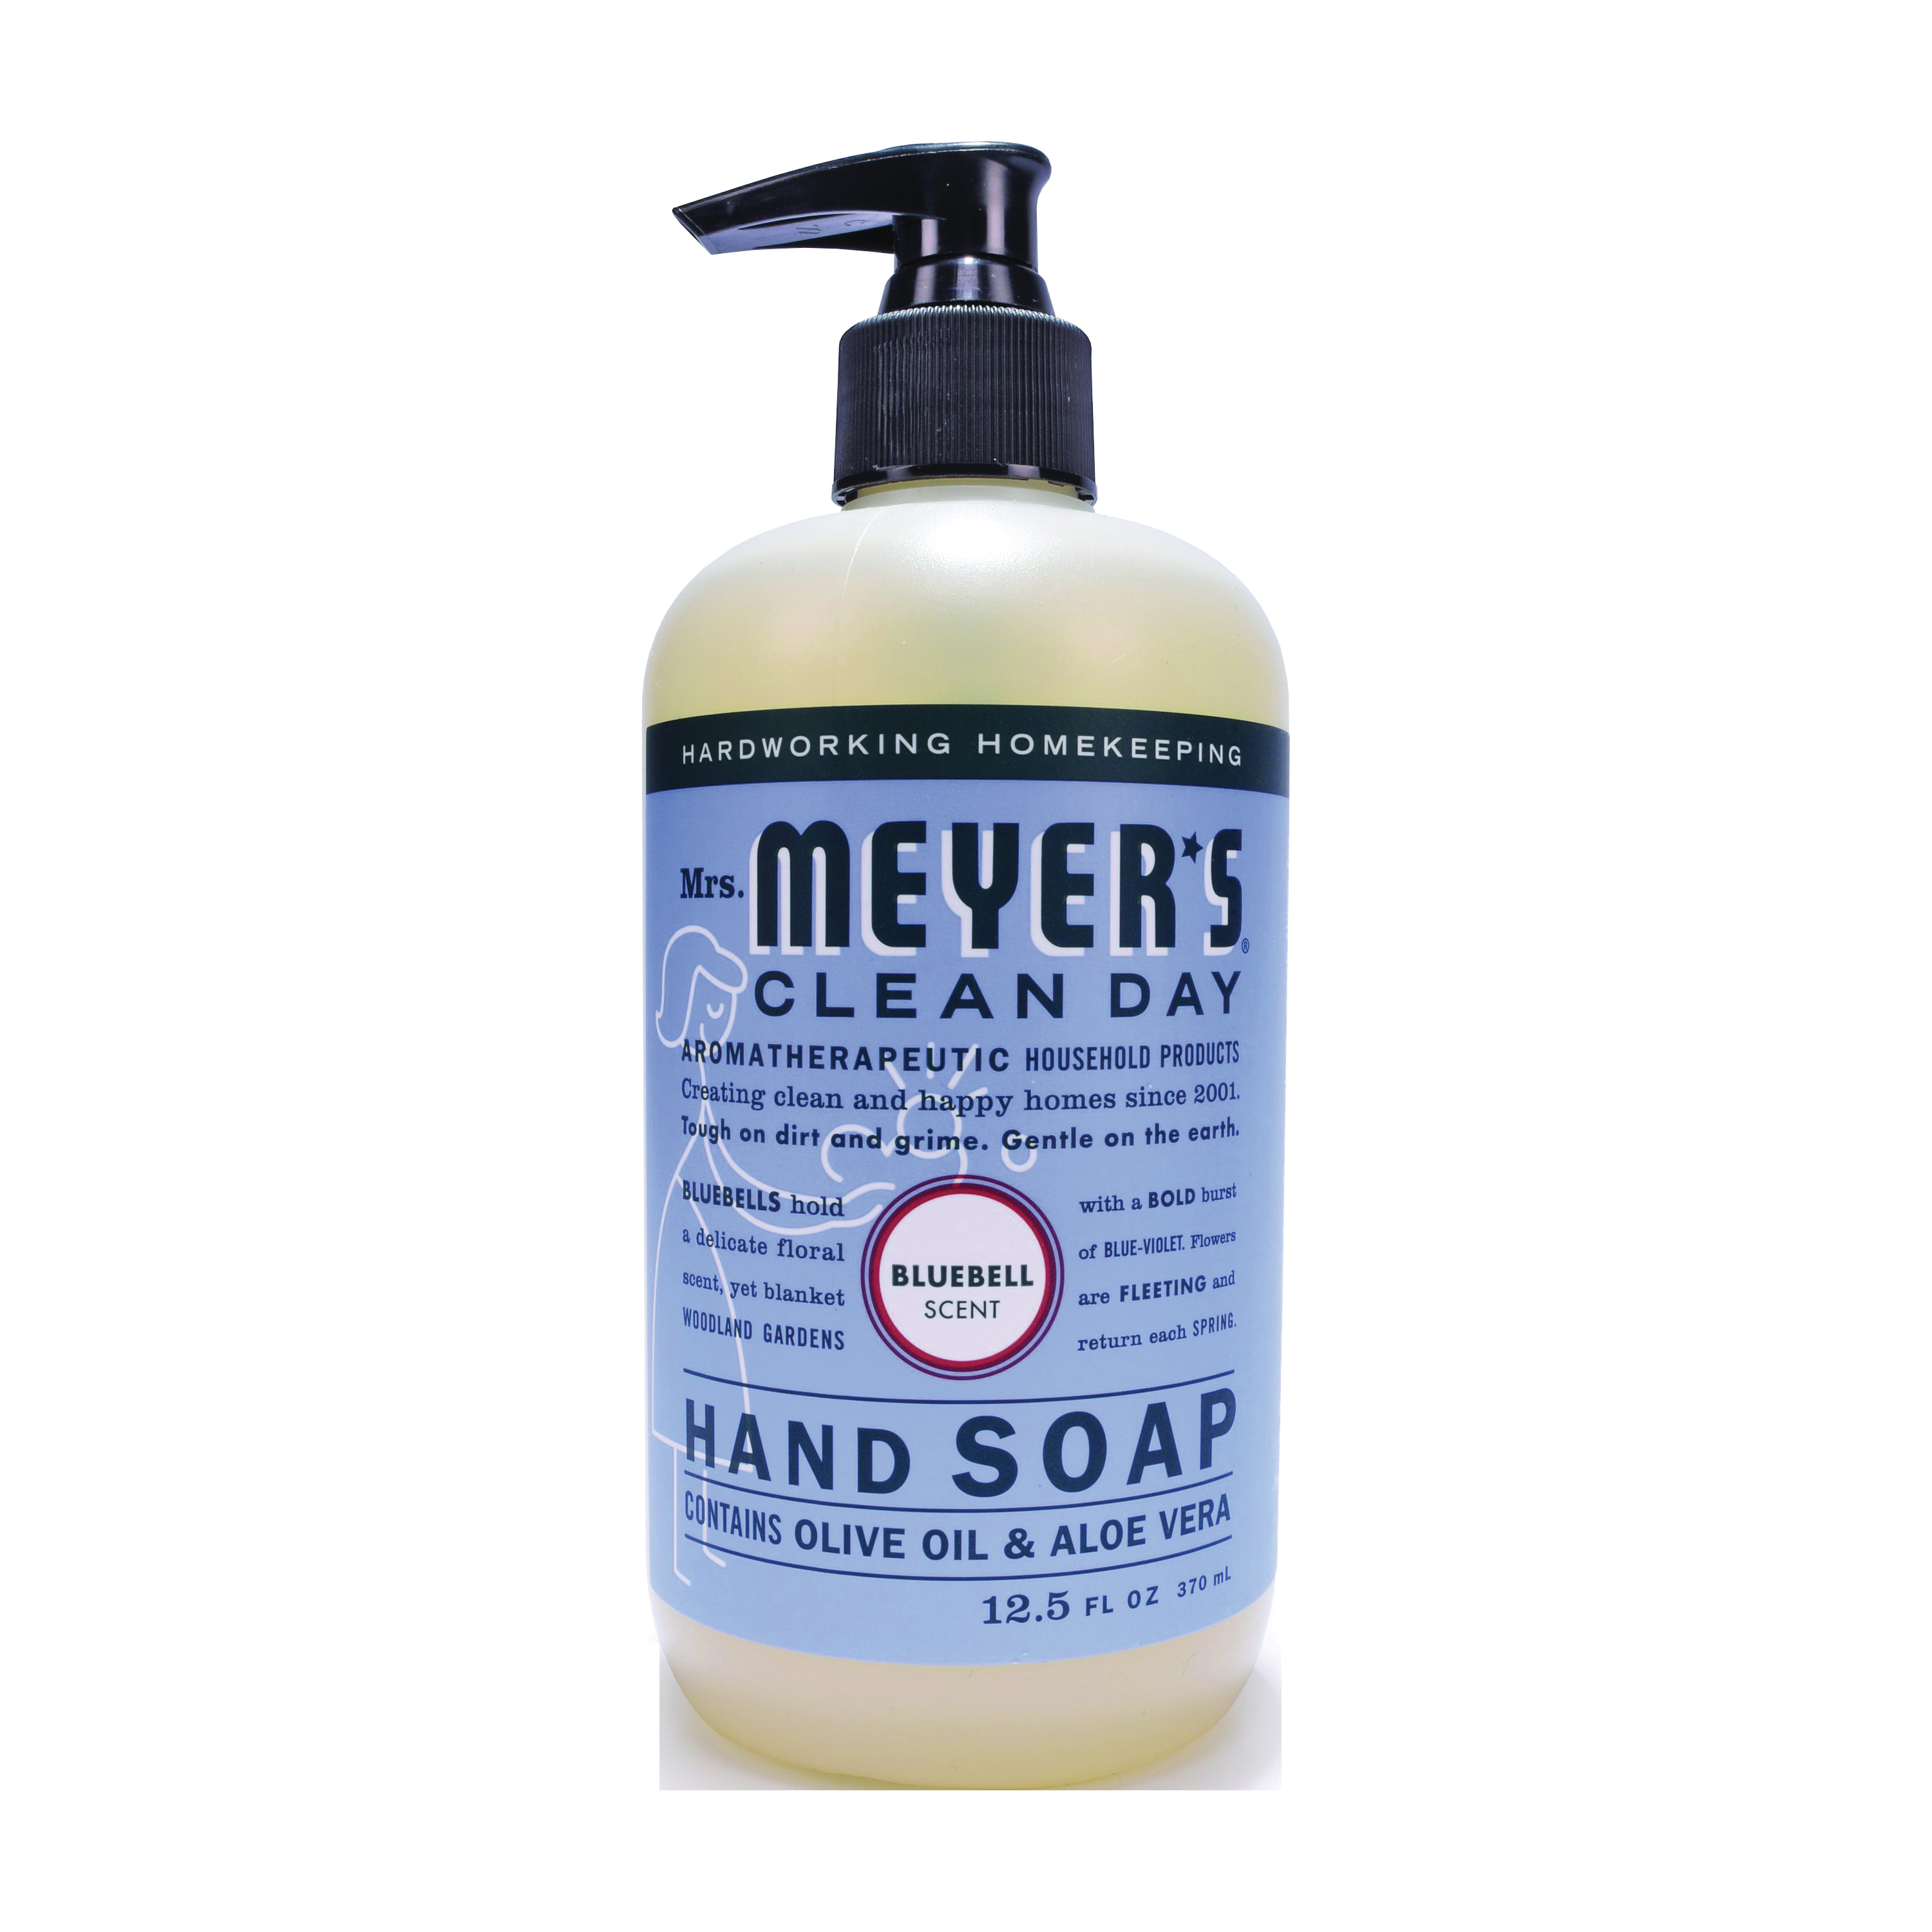 Picture of Mrs. Meyer's 17484 Hand Soap, Liquid, Bluebell, 12.5 oz Package, Bottle